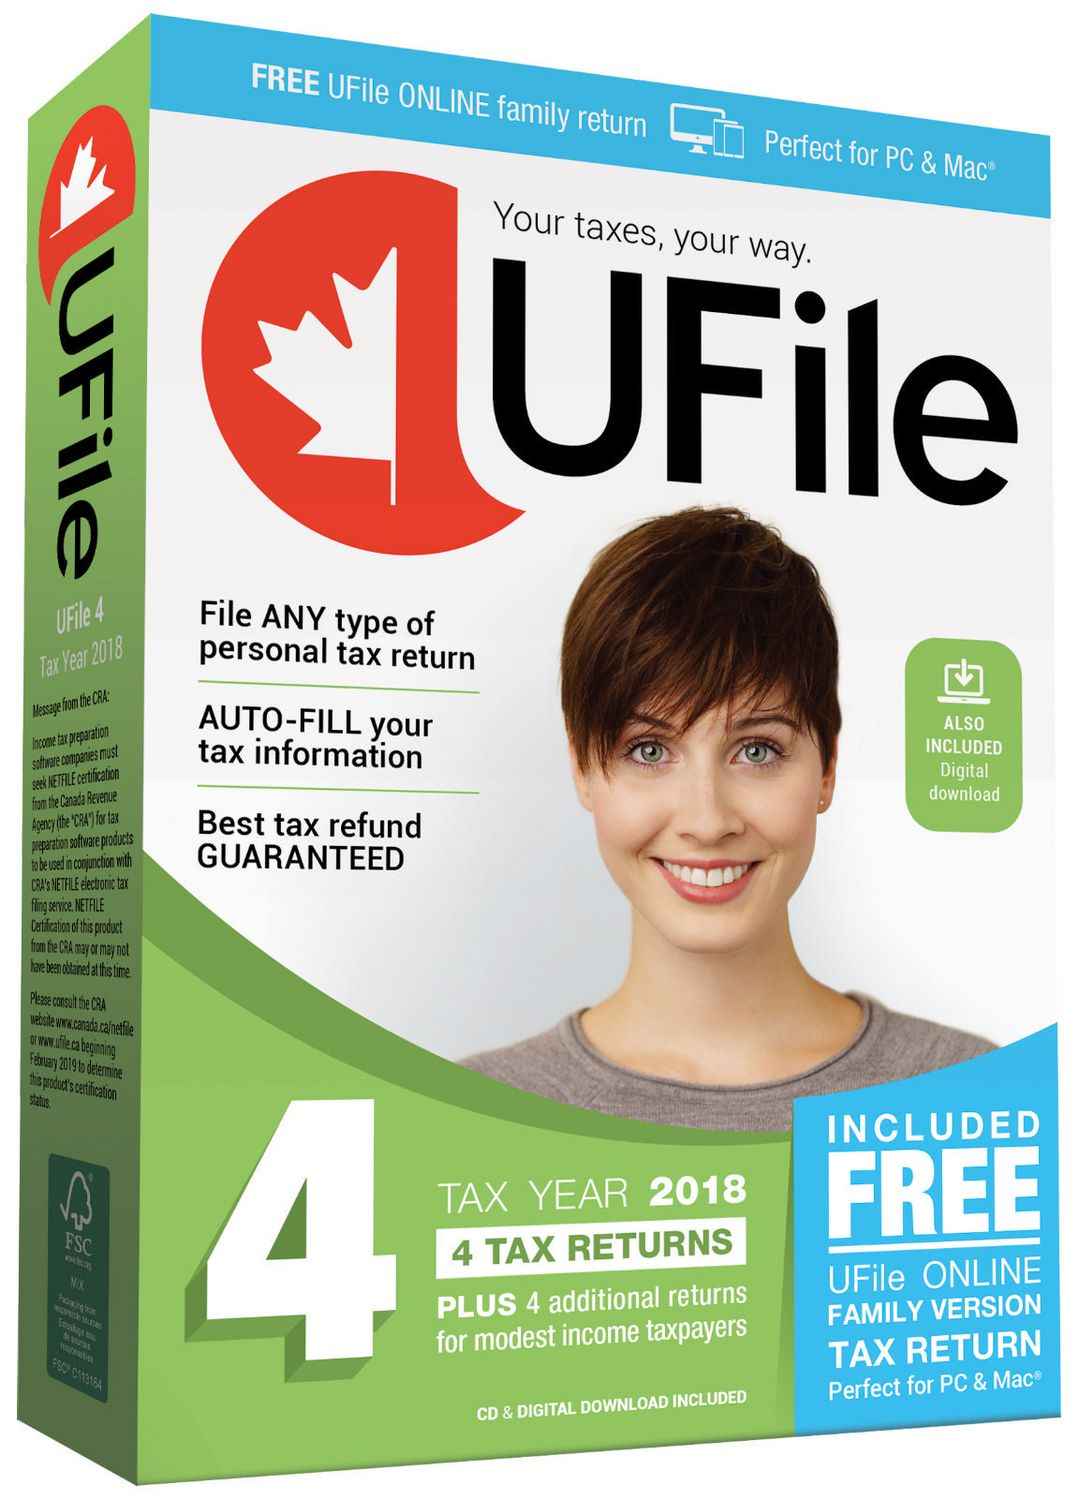 Dr  Tax UFile 4 Tax Returns & Free UFile Online family version (PC & Mac)